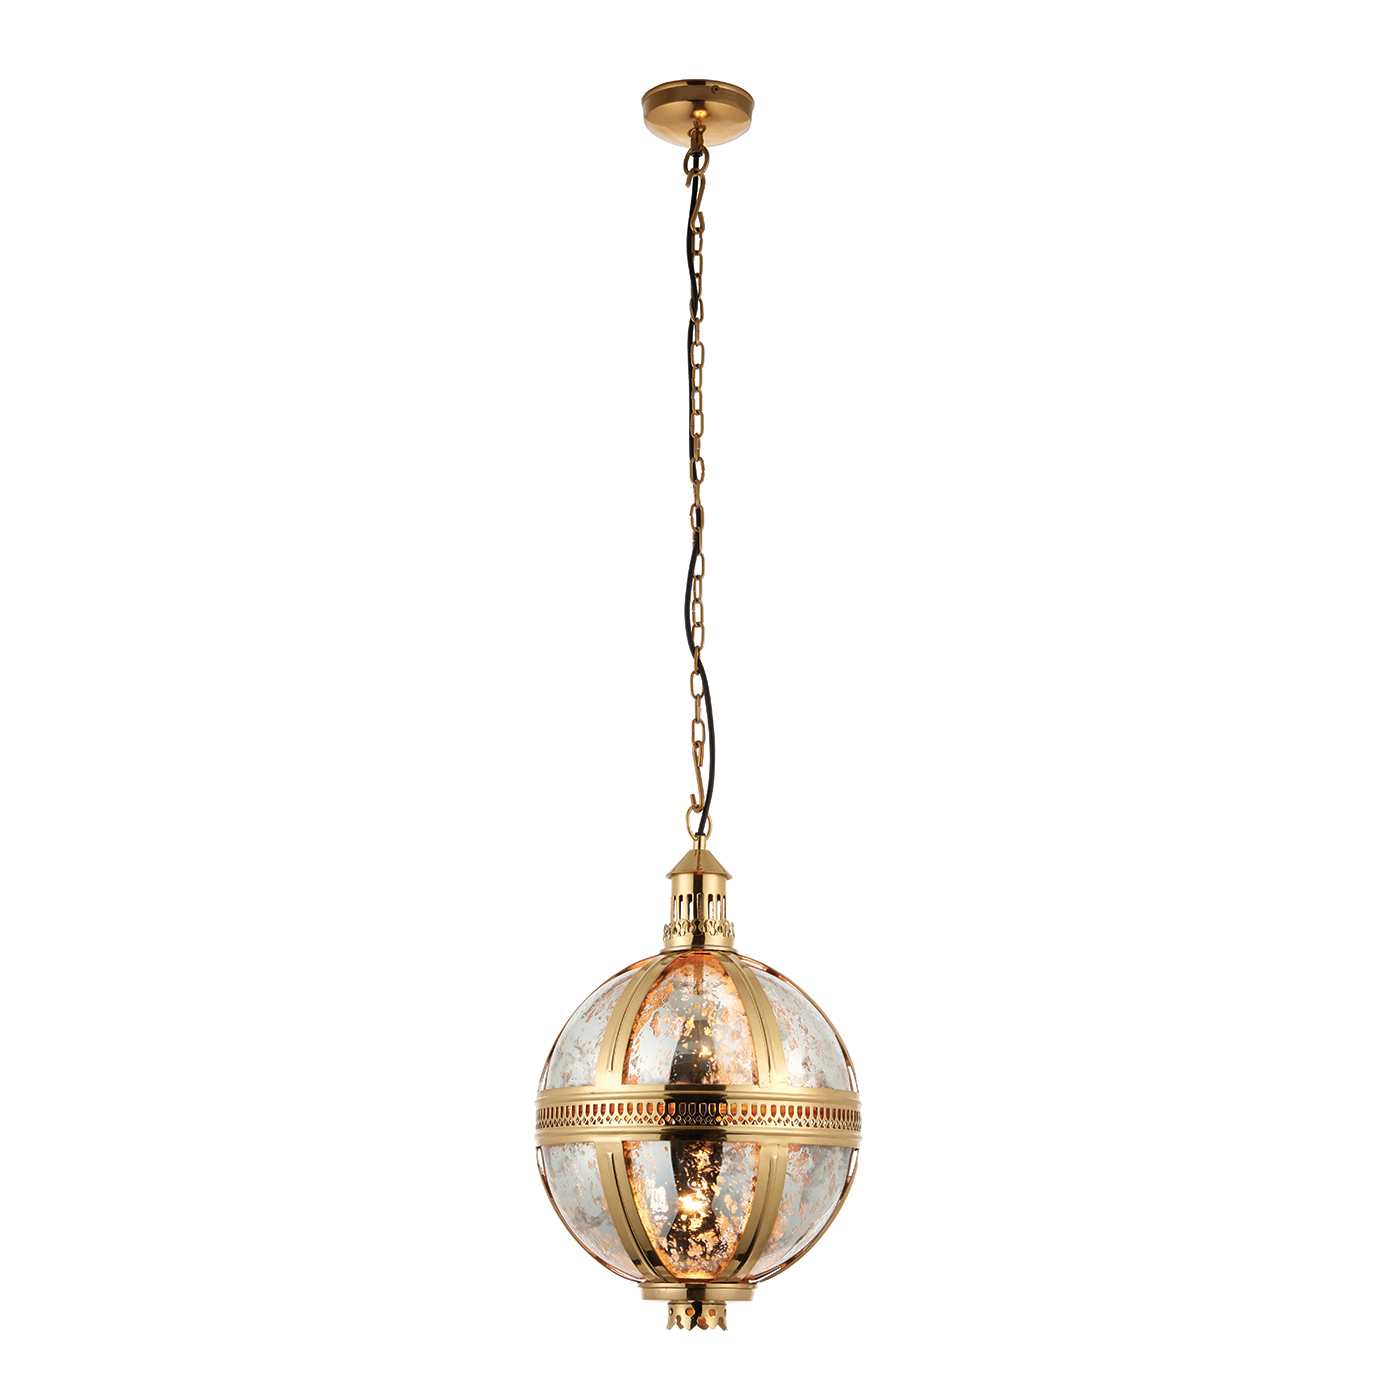 Endon Vienna 305mm pendant 40W Solid brass & mercury glass Thumbnail 1